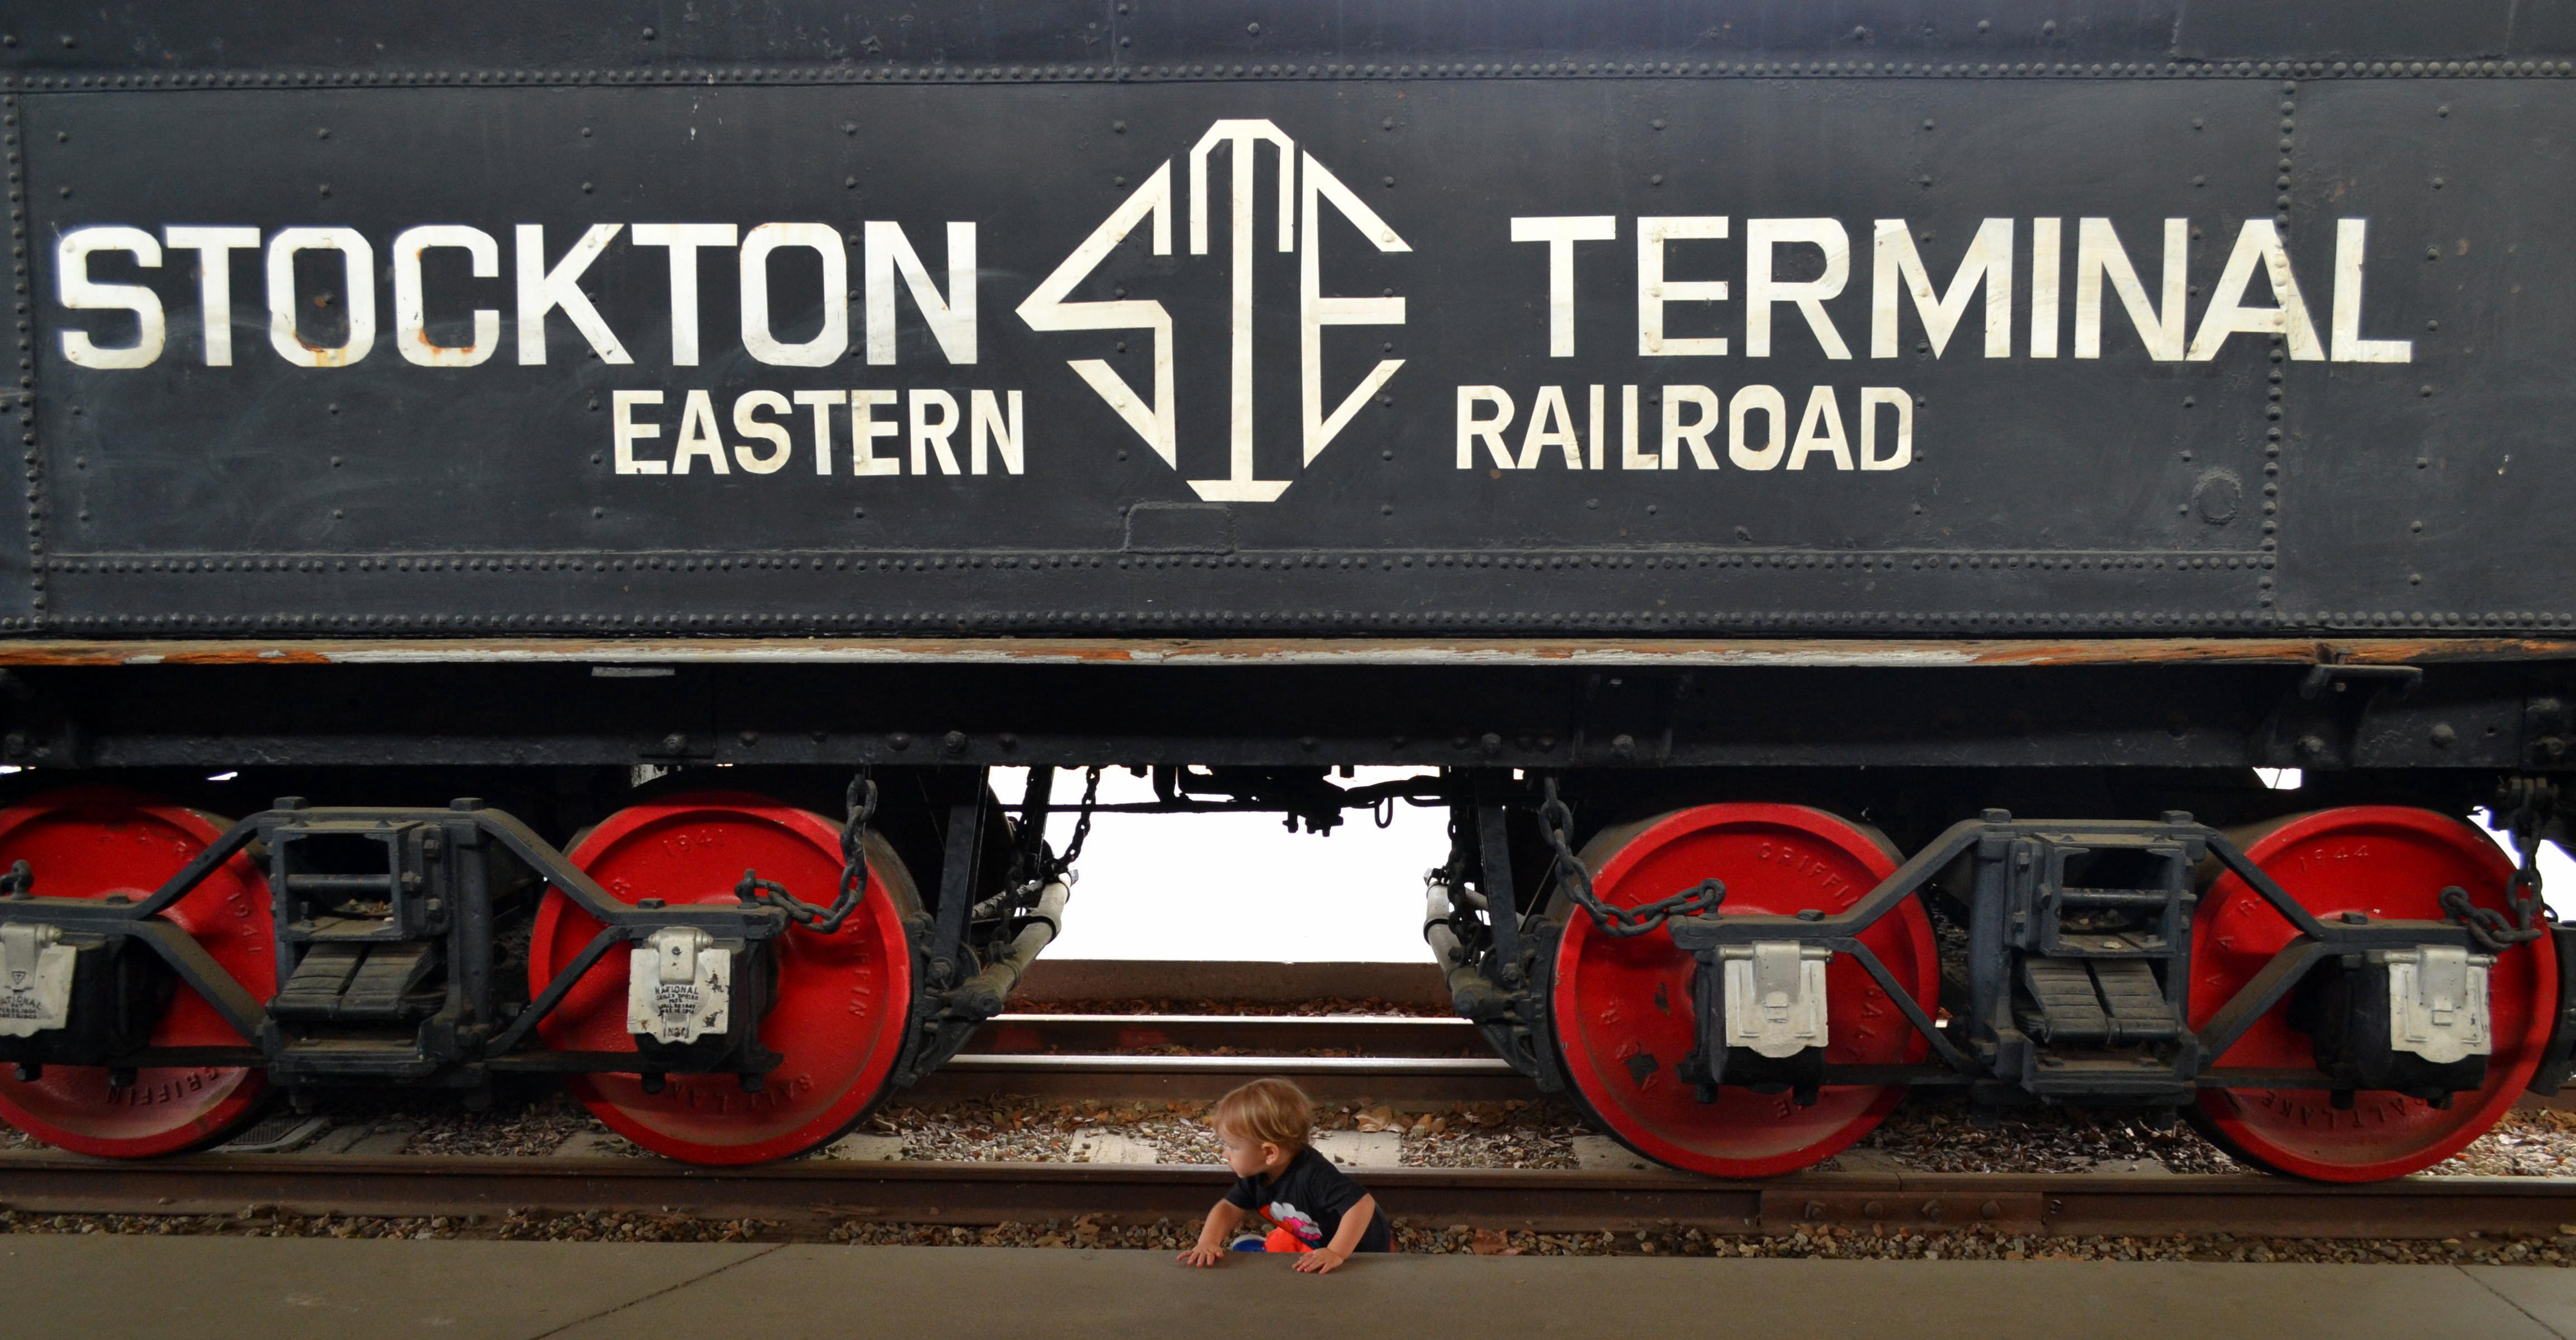 Lincoln checked out some old trains...